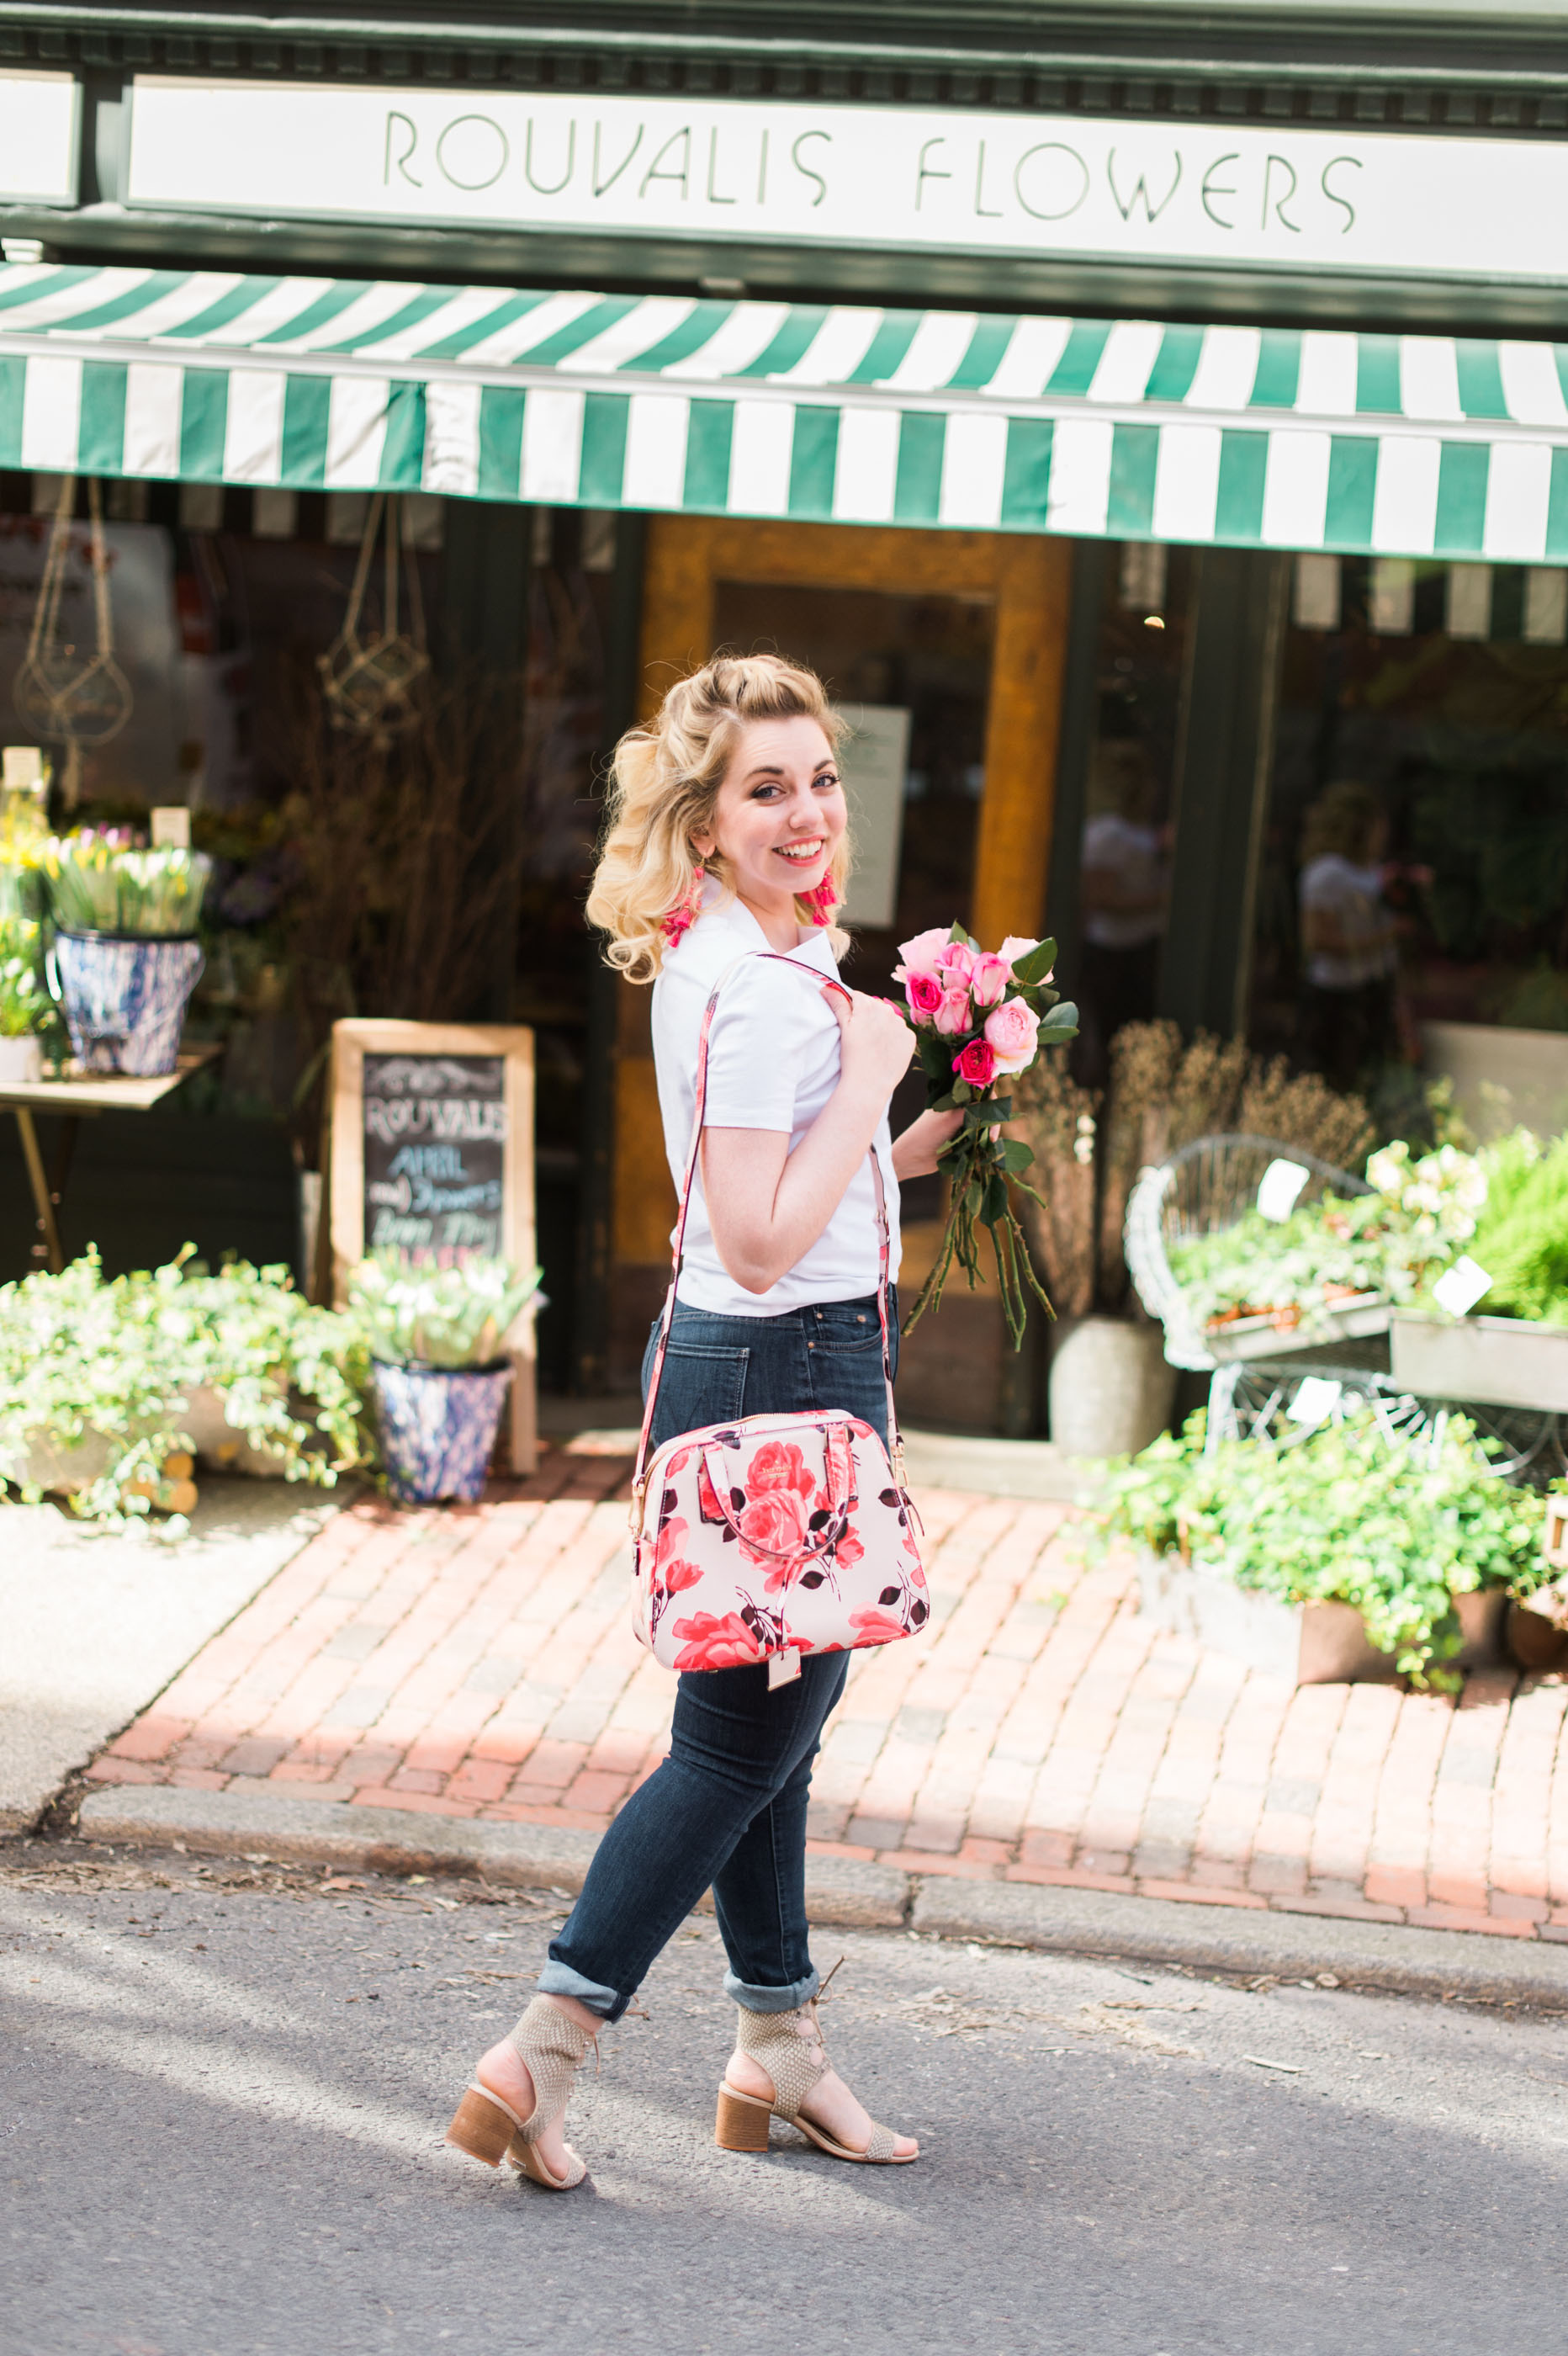 How To Add Spring To Your Outfit | To The 9s: Navigating Fashion & Style